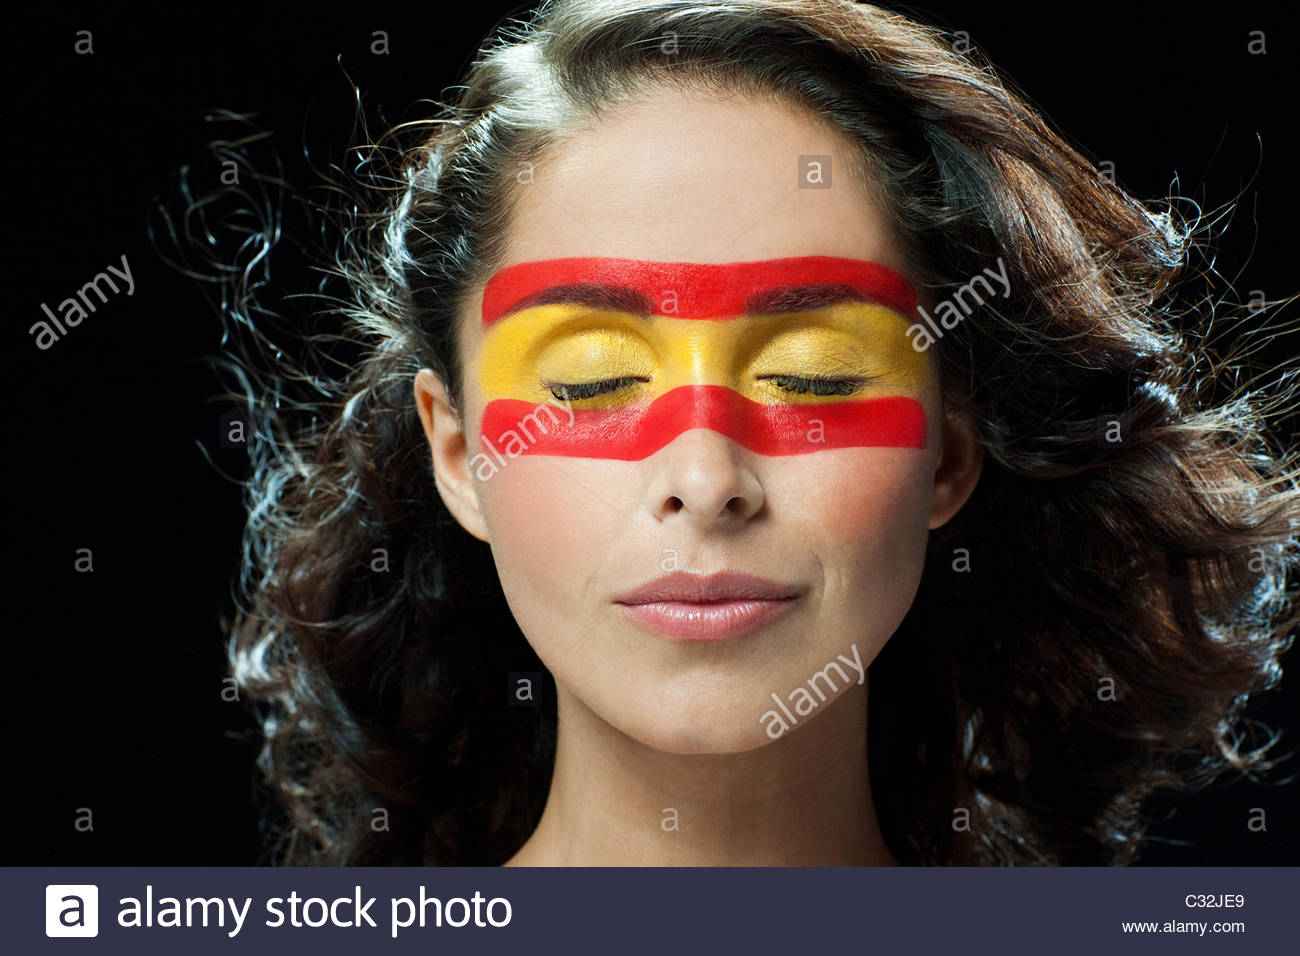 Woman with Spanish flag painted on face, eyes closed - Stock Image